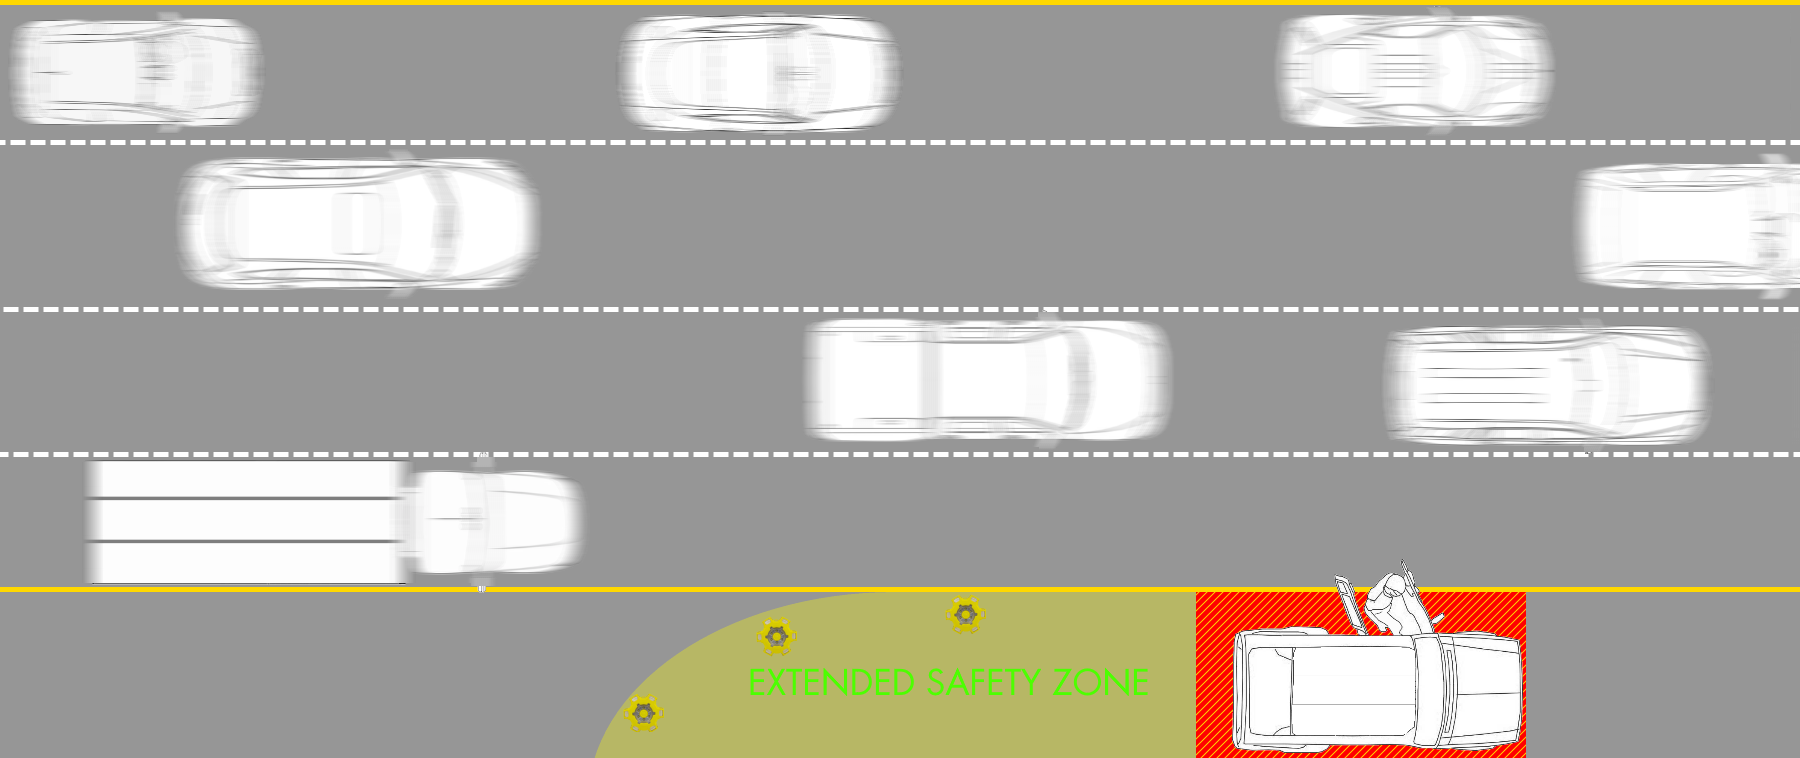 Wagan Tech Blog - Extend Your Safety Zone